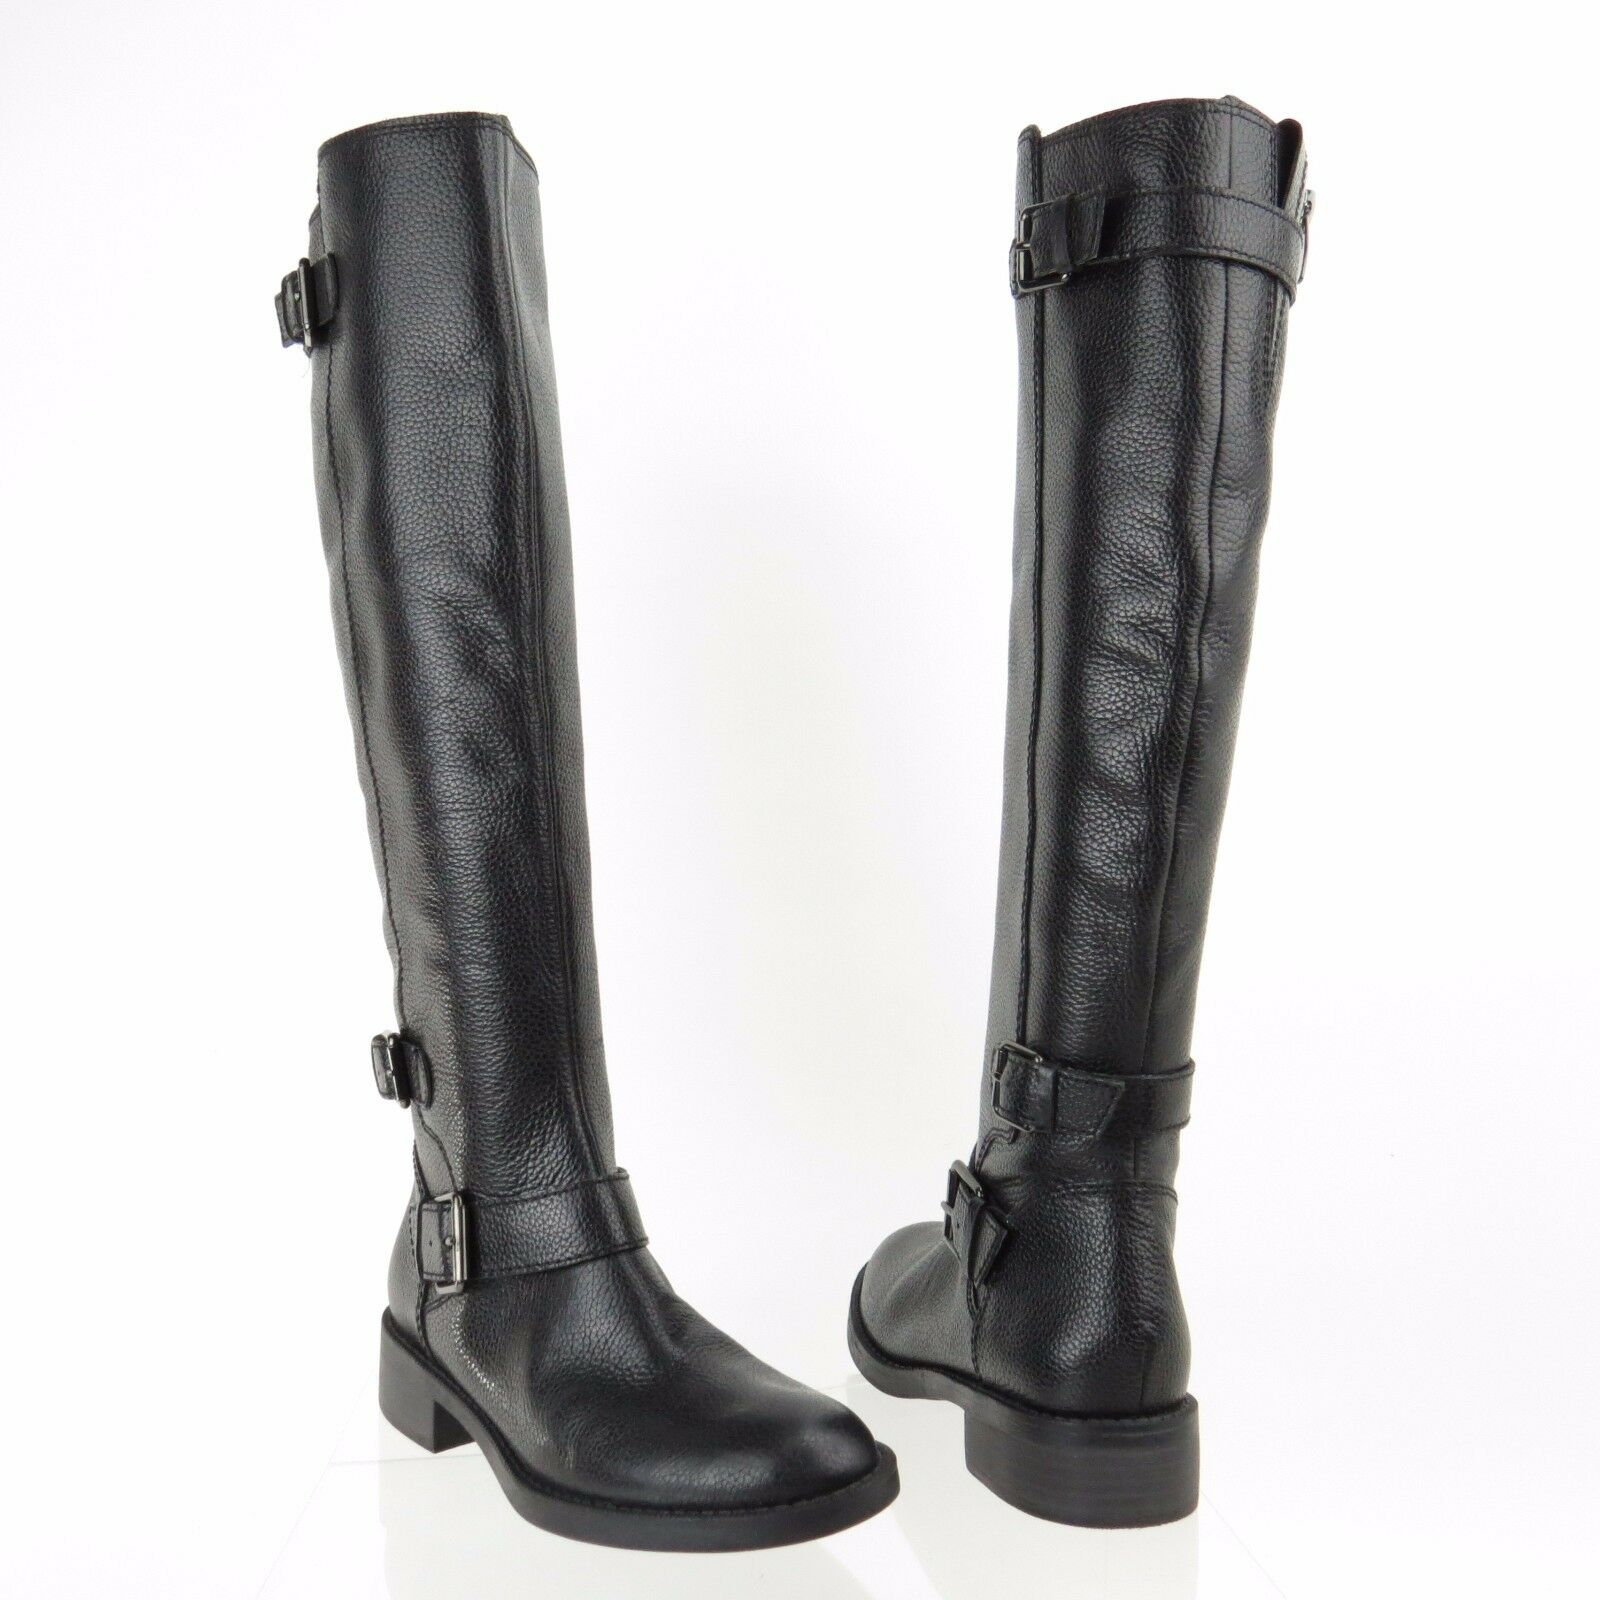 Women's Enzo Angiolini Sayin Shoes Black Leather Riding Boots Size 6 M RTL 200